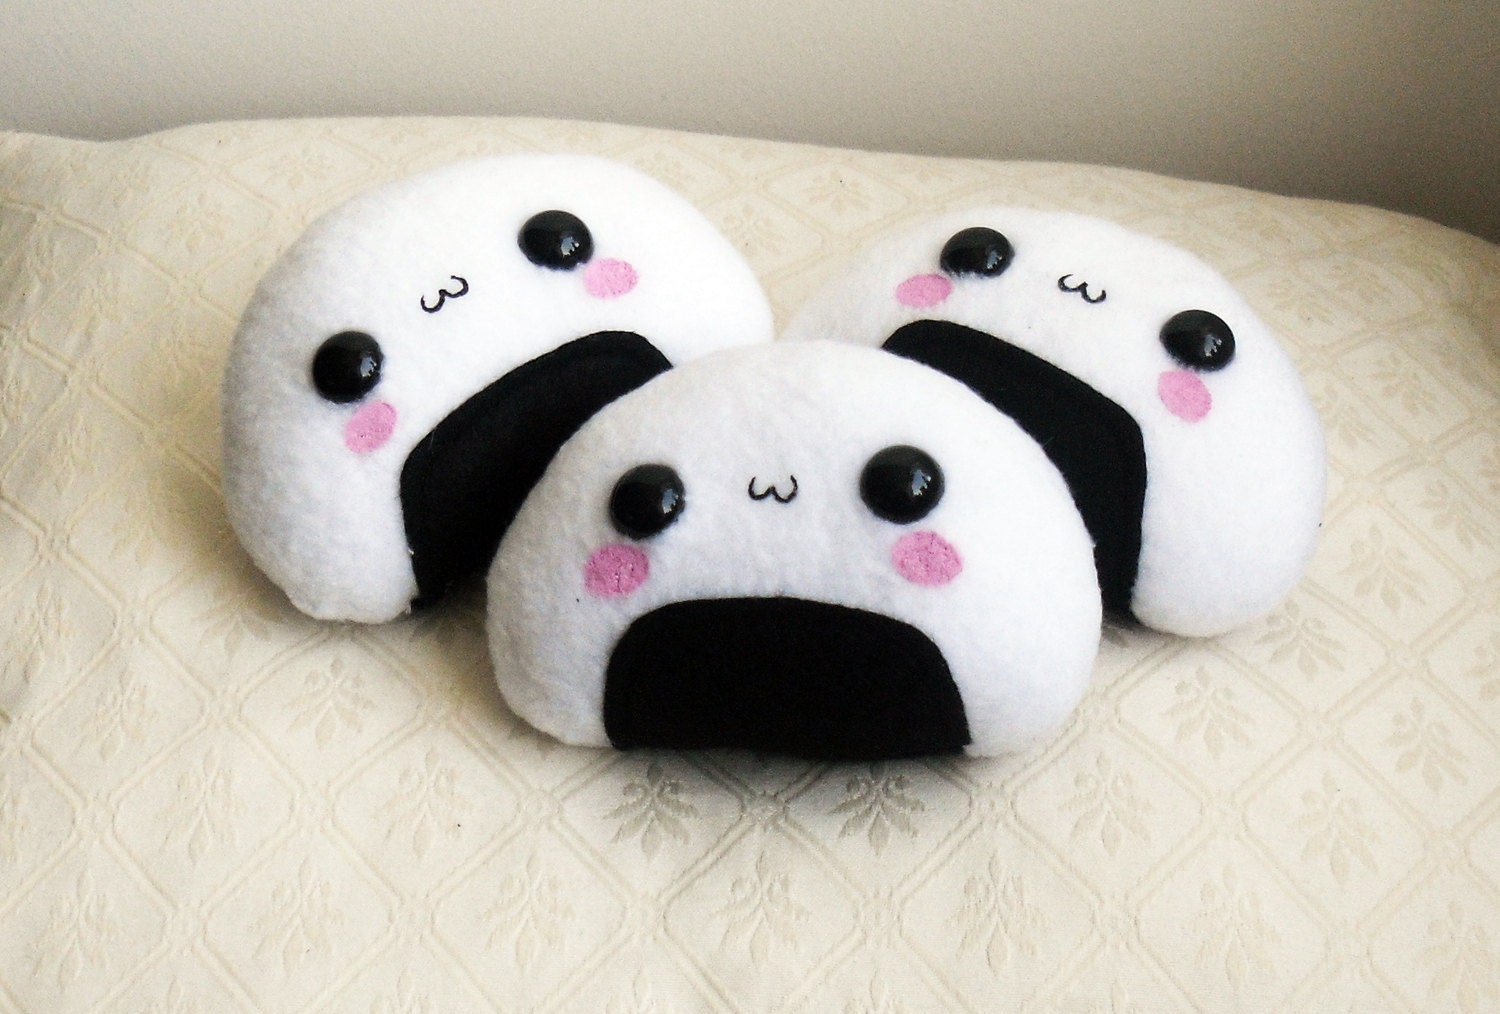 KAWAII ONIGIRI PLUSH - Super cute Kawaii Onigiri Plush Toy